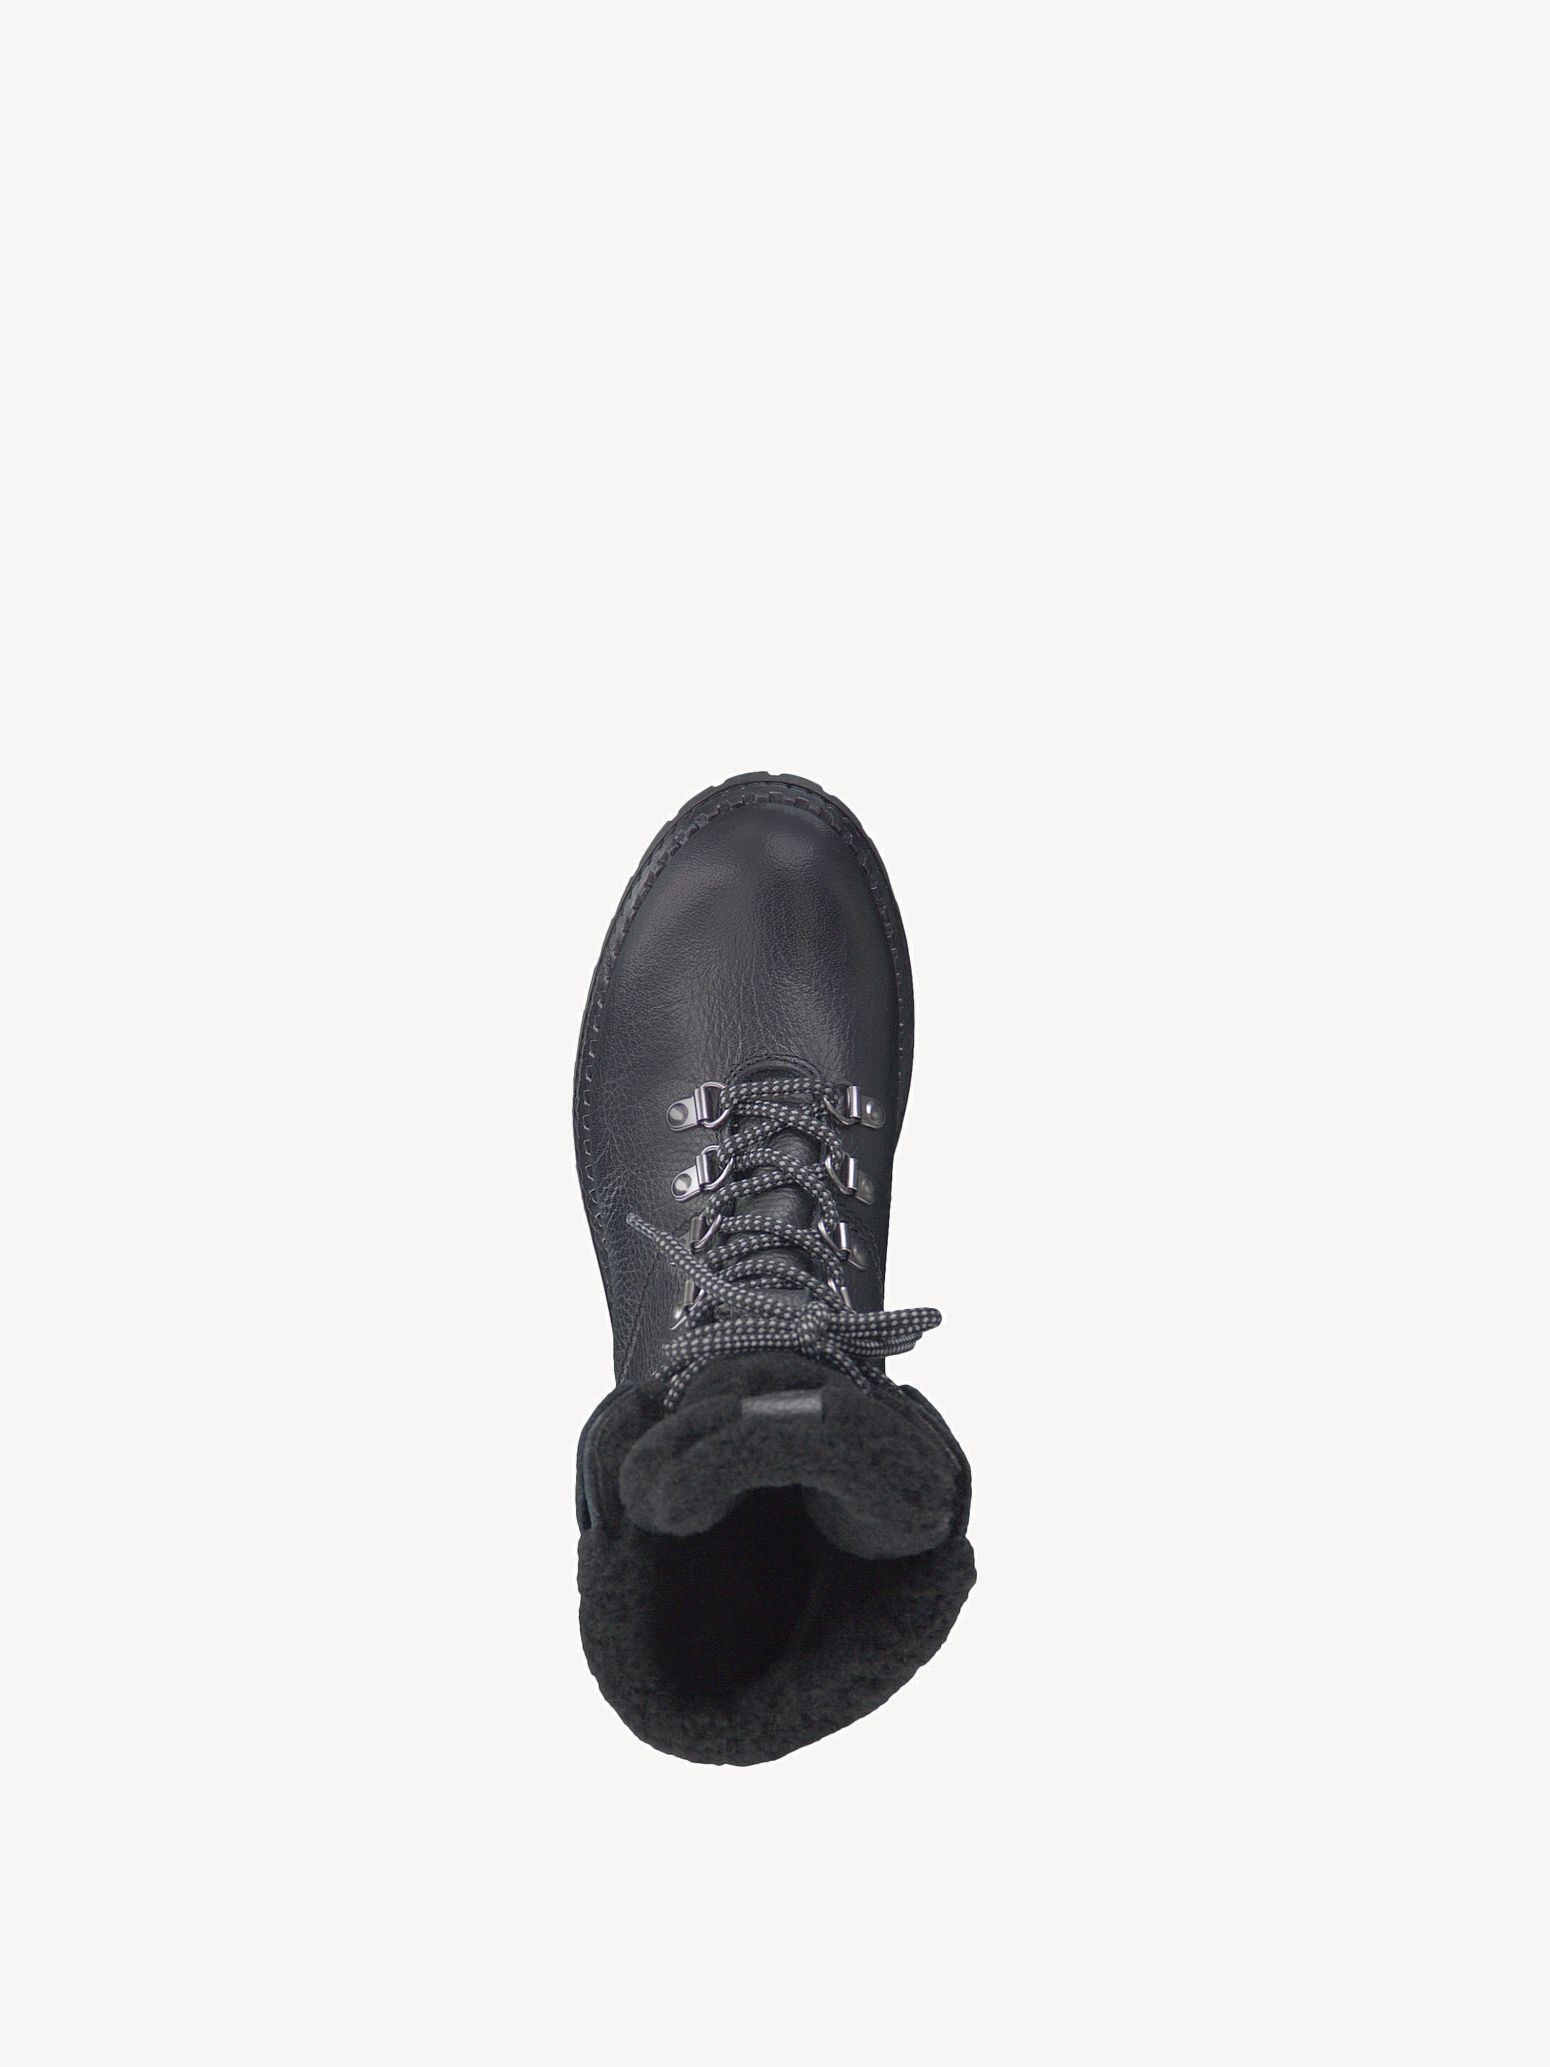 Leather Bootie - black, BLACK LEA. UNI, hi-res